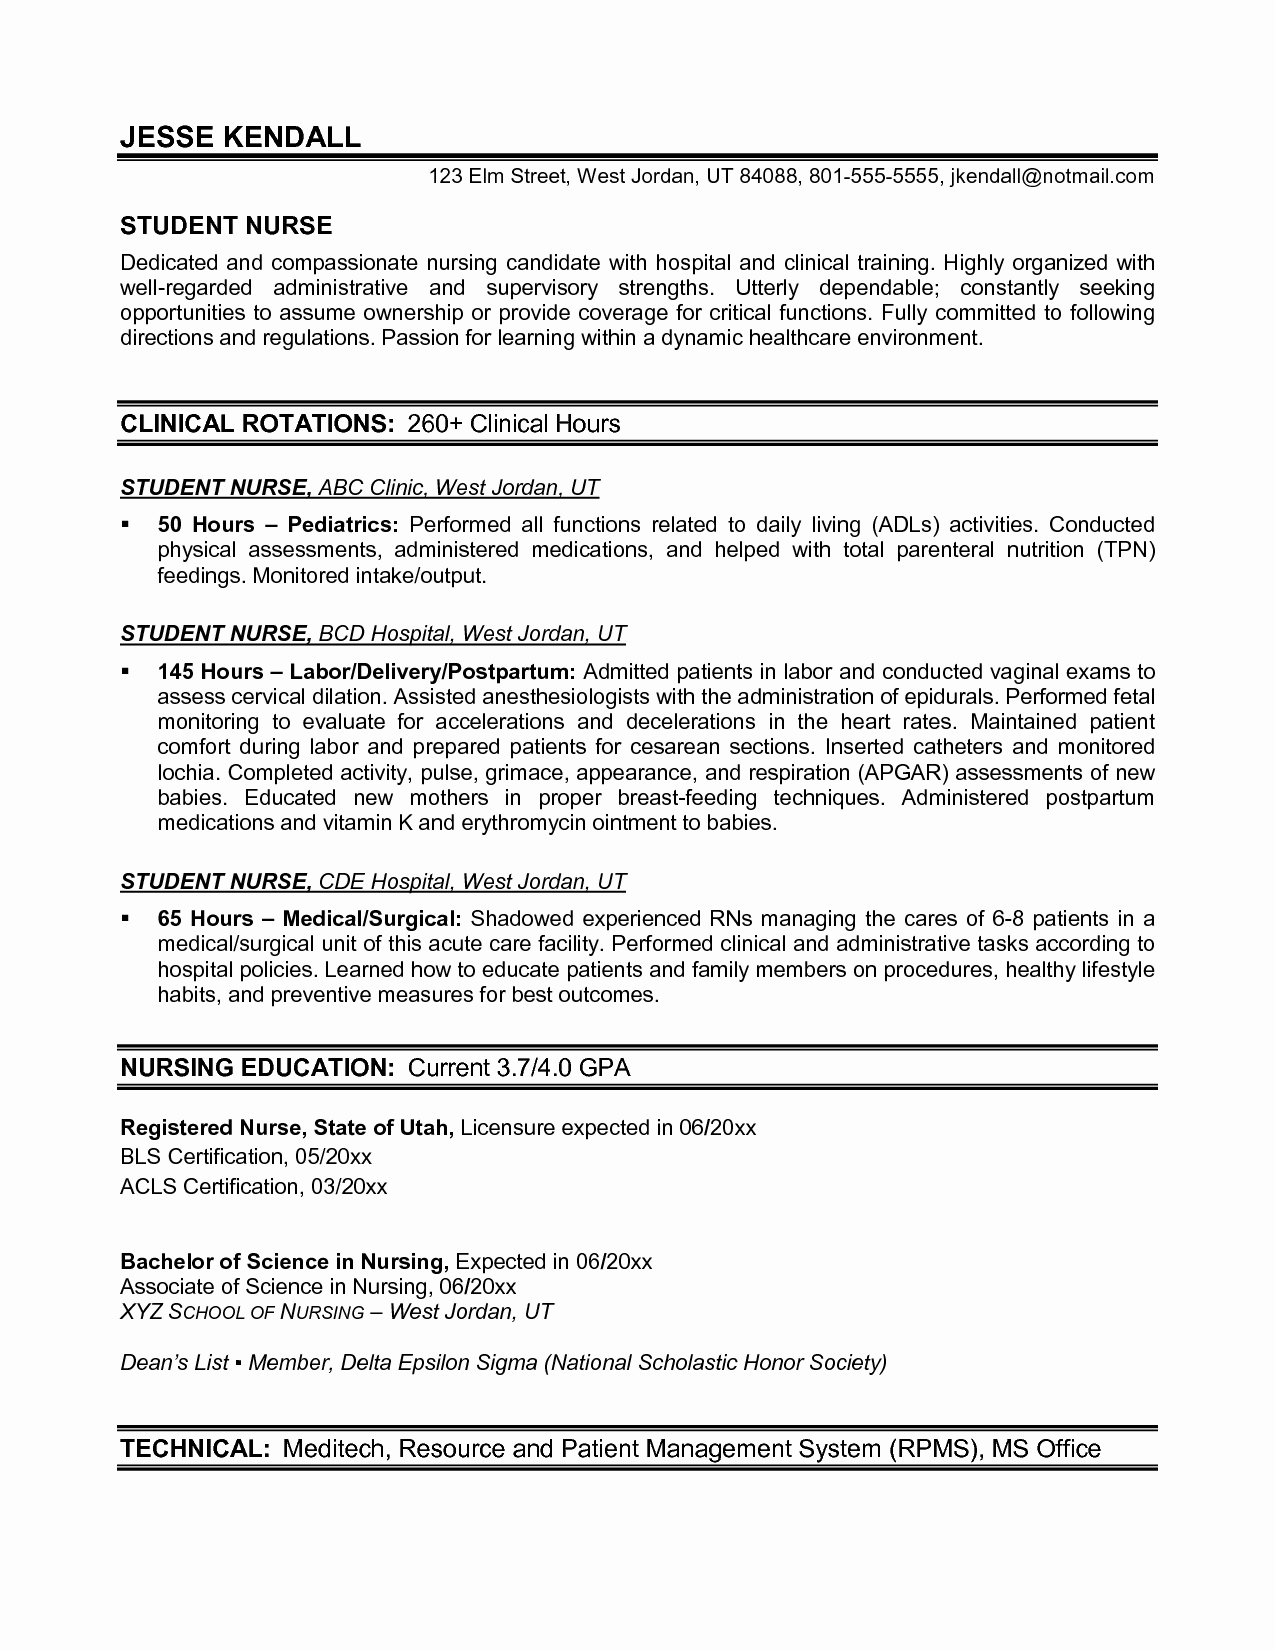 New Grad Nurse Resume Examples with Manager Experience Rn